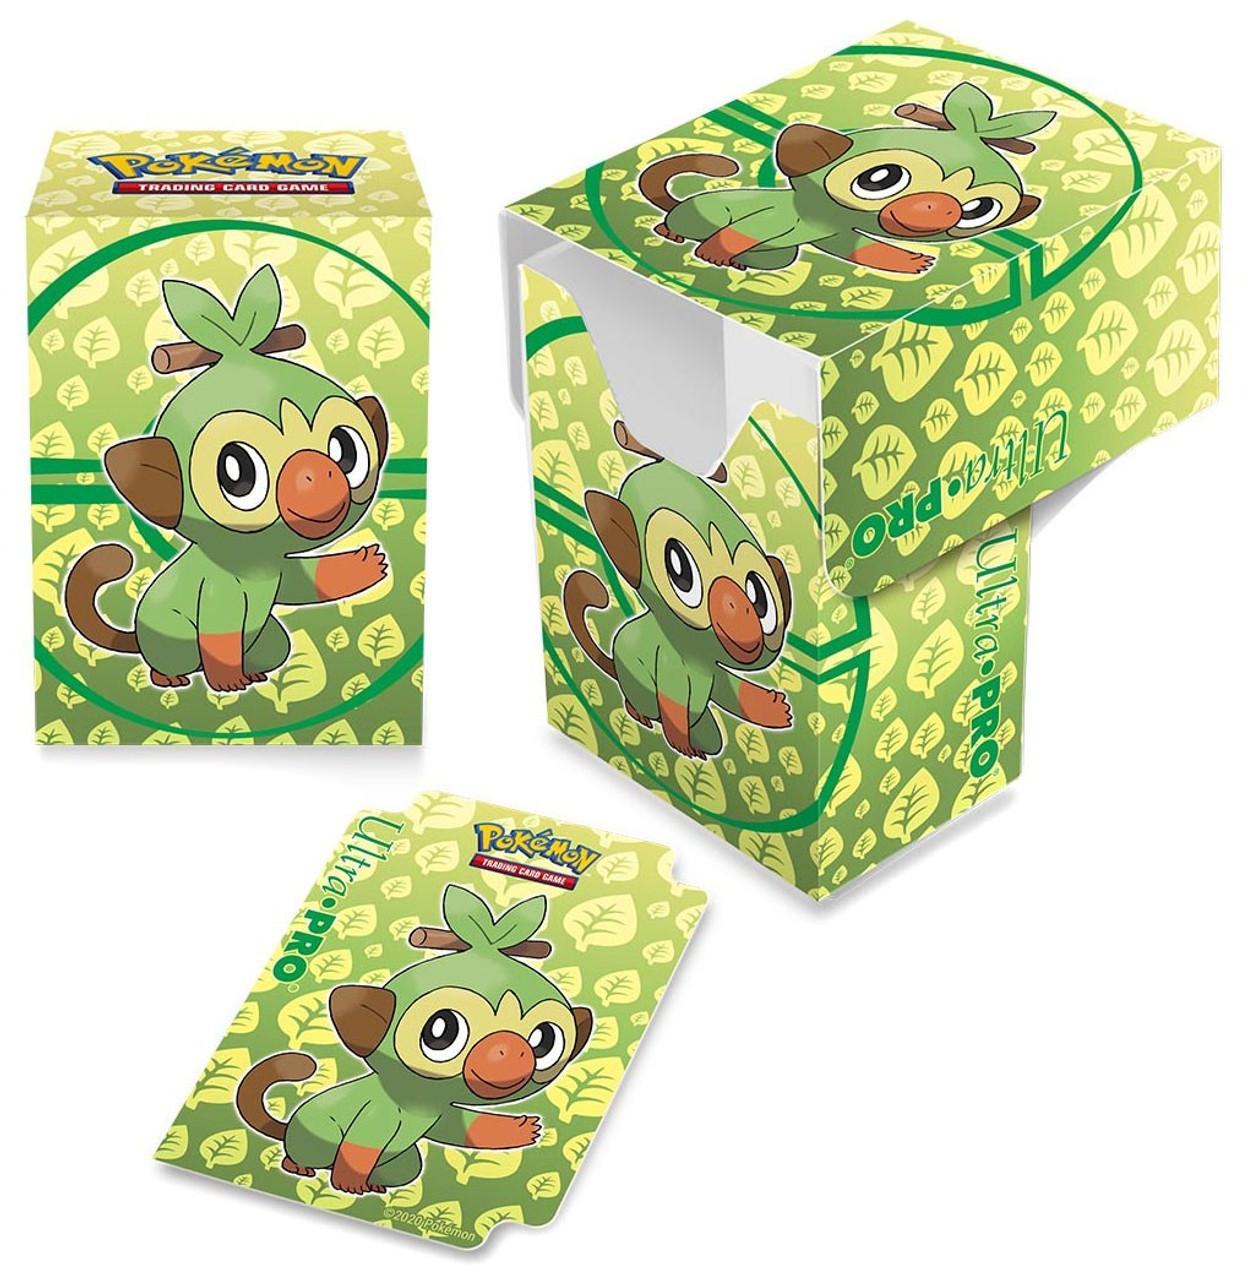 Ultra Pro Pokemon Trading Card Game Sword Shield Galar Starters Deck Box Grookey Toywiz They have a wide multitude of uses. ultra pro